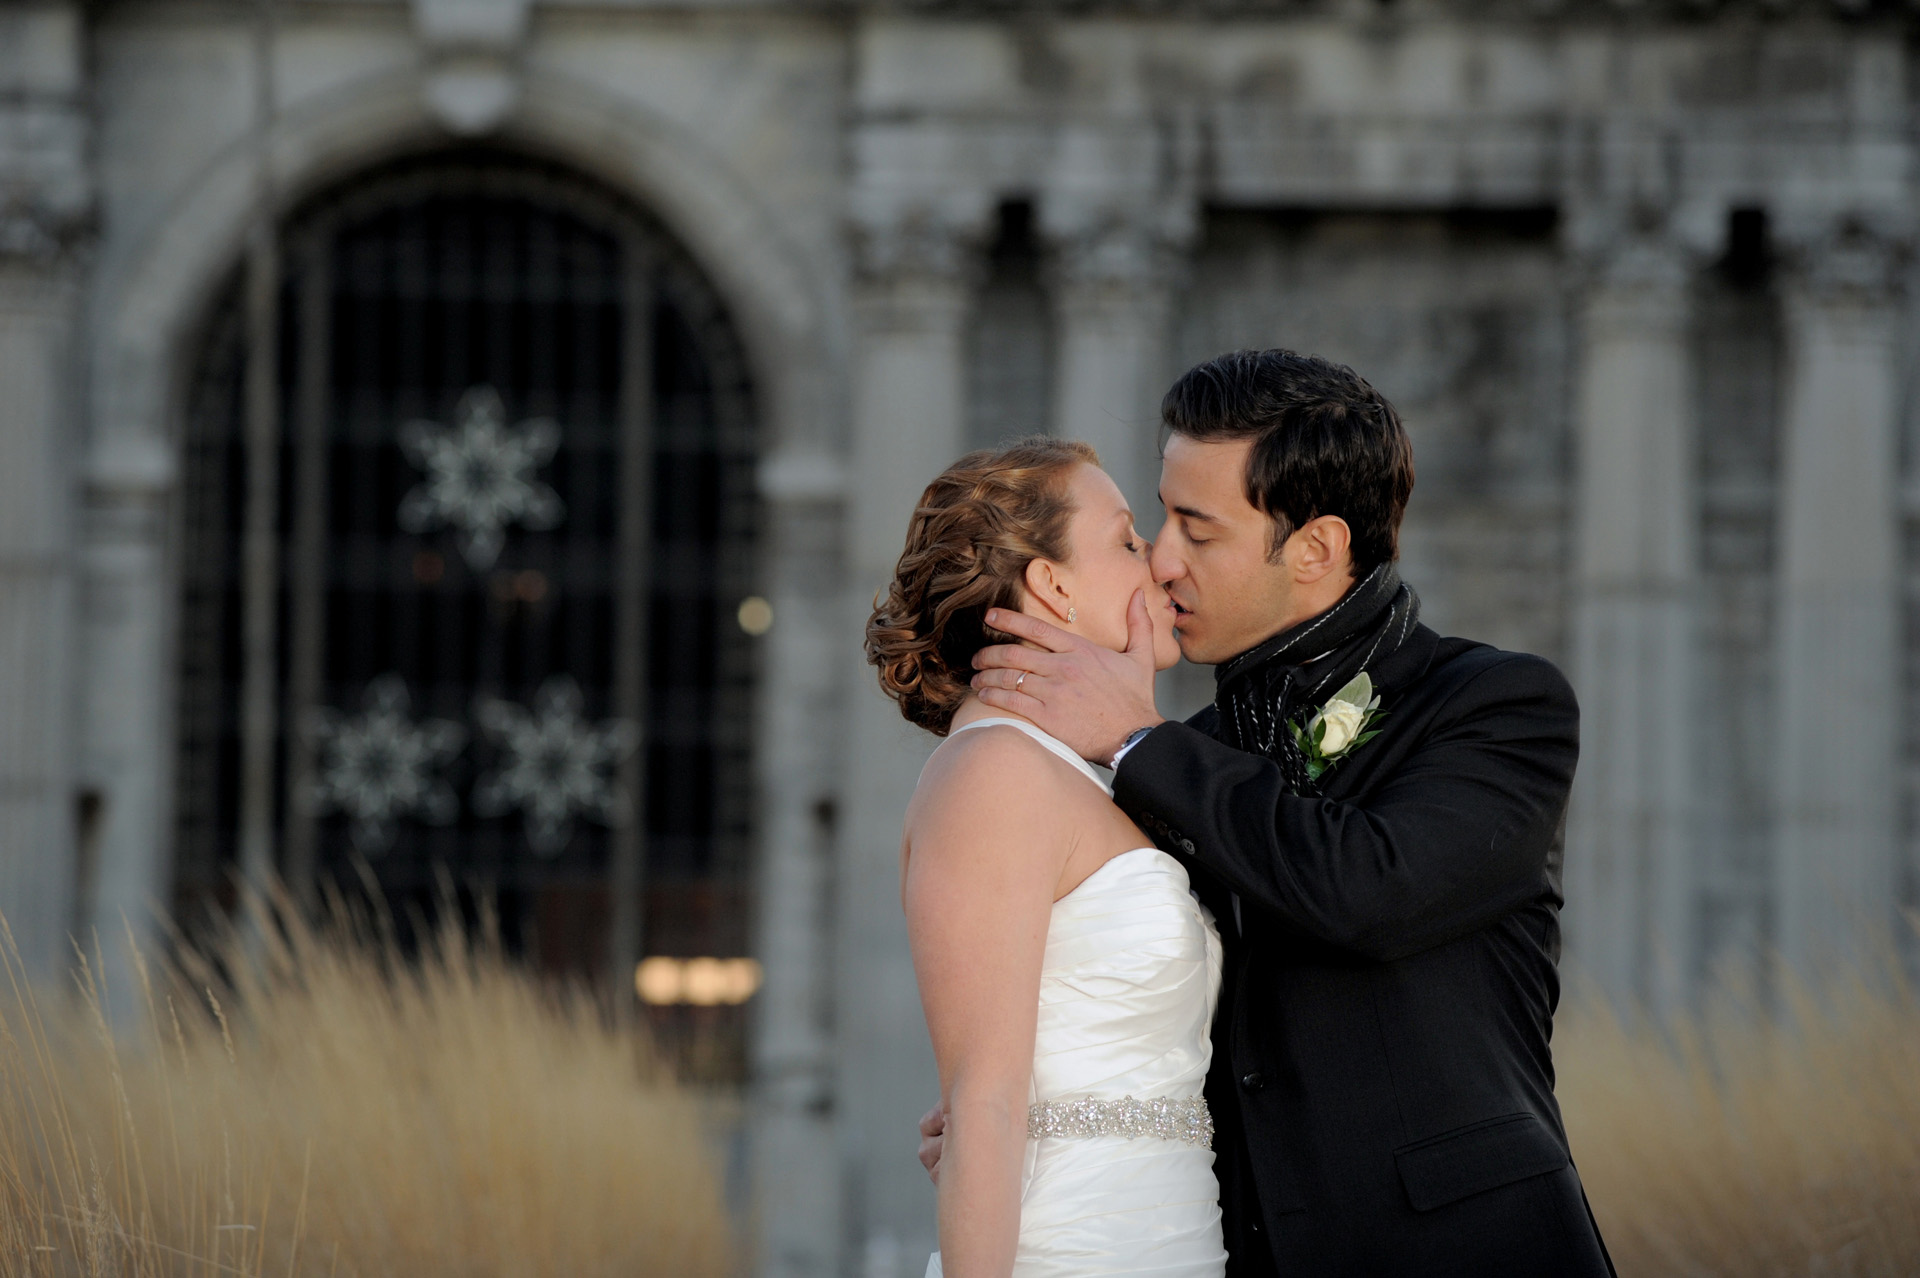 The Historic church Sweetest Heart of Mary and the Dearborn Inn of Detroit's historic church in Detroit and Dearborn, Michigan wedding photographer's photo of the wedding couple at Detroit's historic train station for wedding photos in Detroit, Michigan.